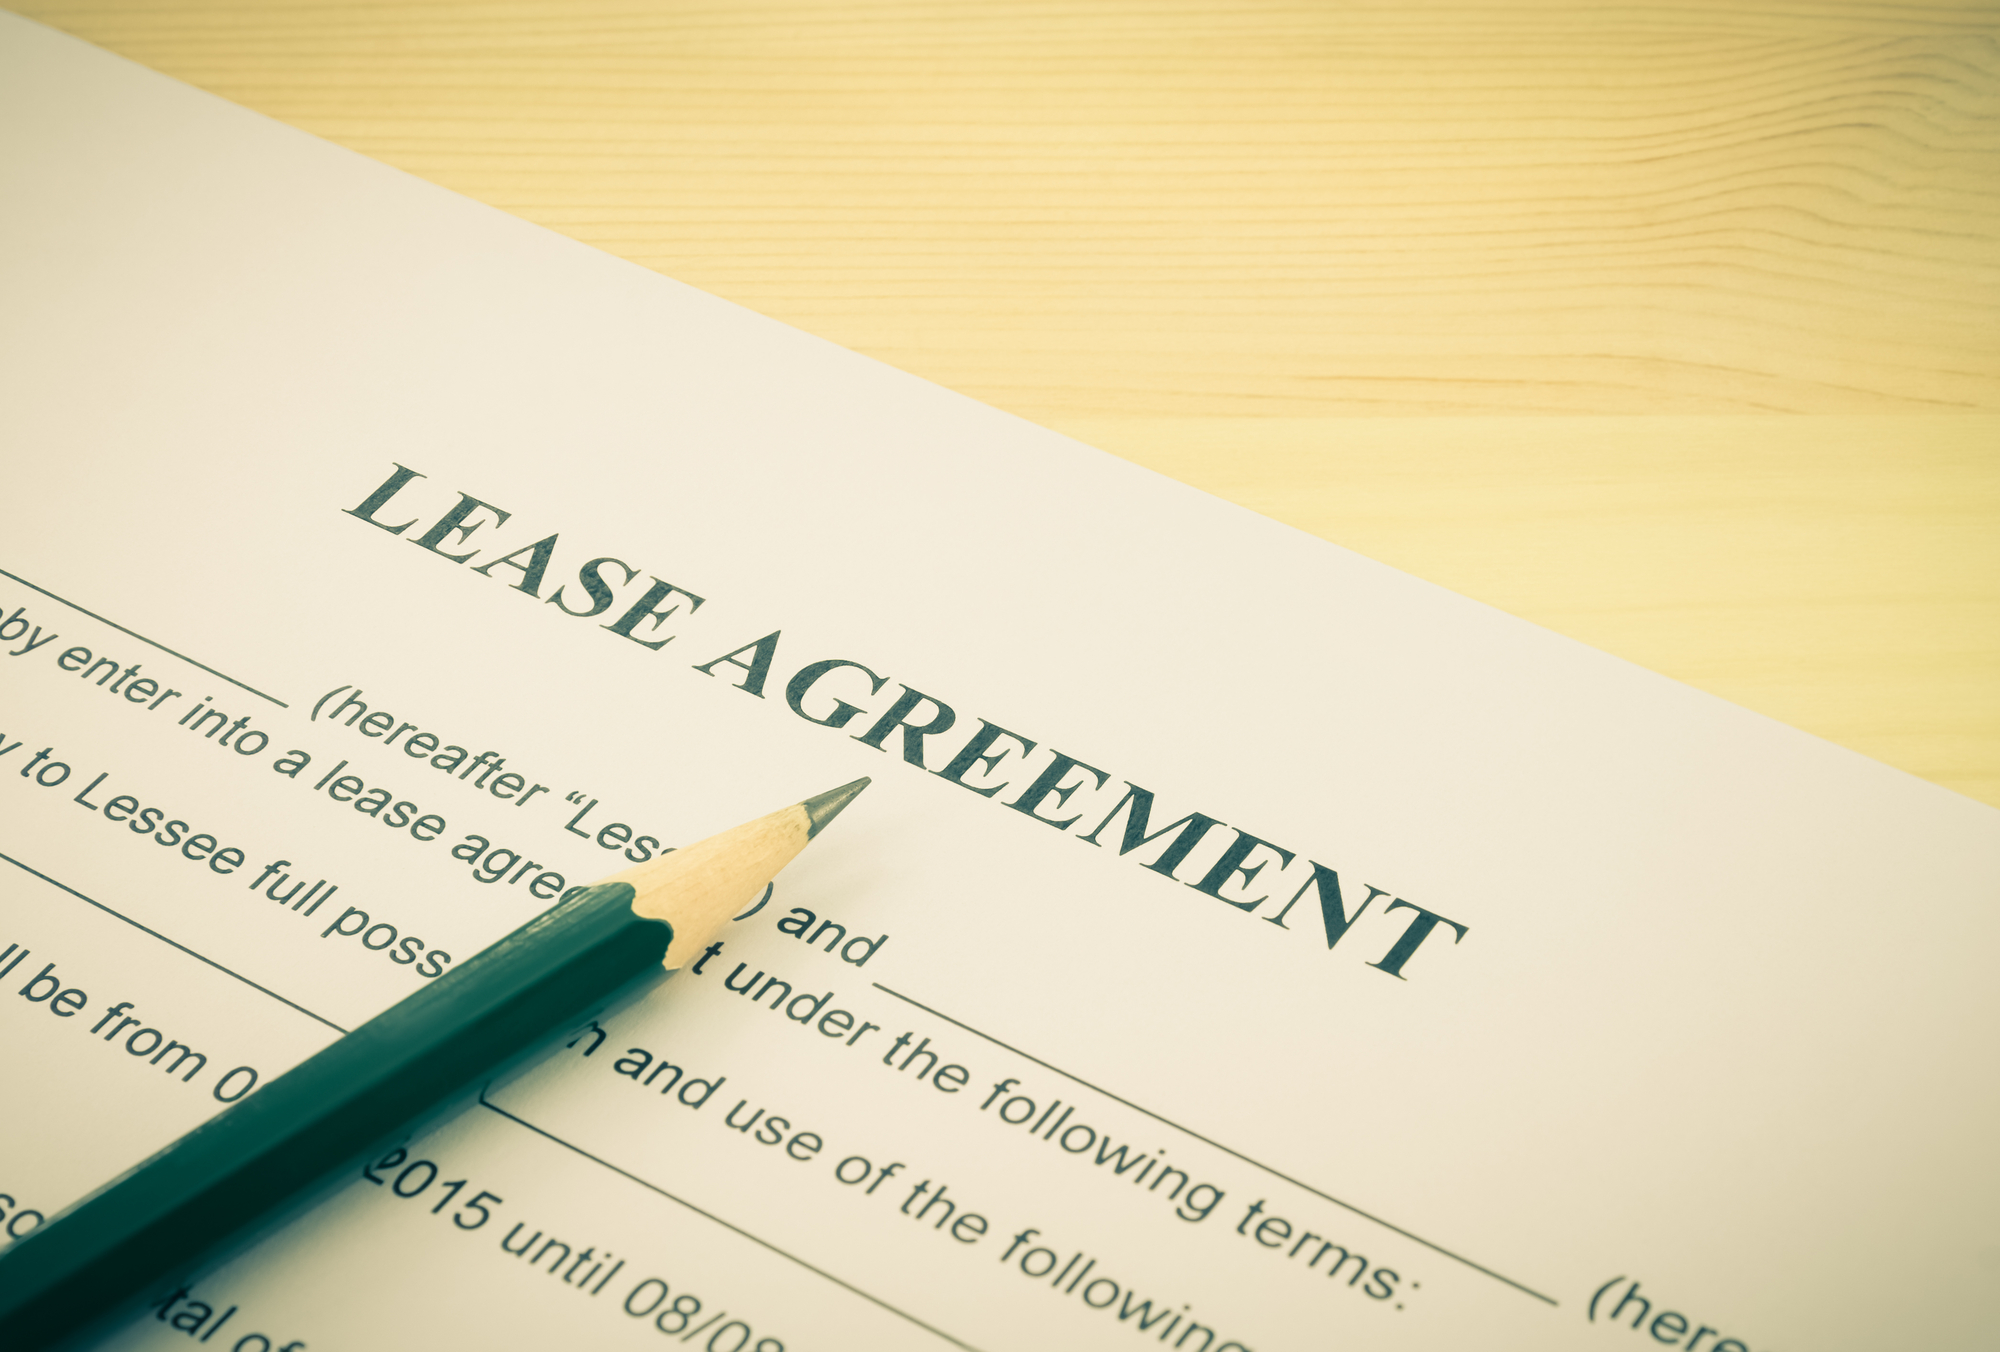 Lease Agreement Contract Document and Pencil